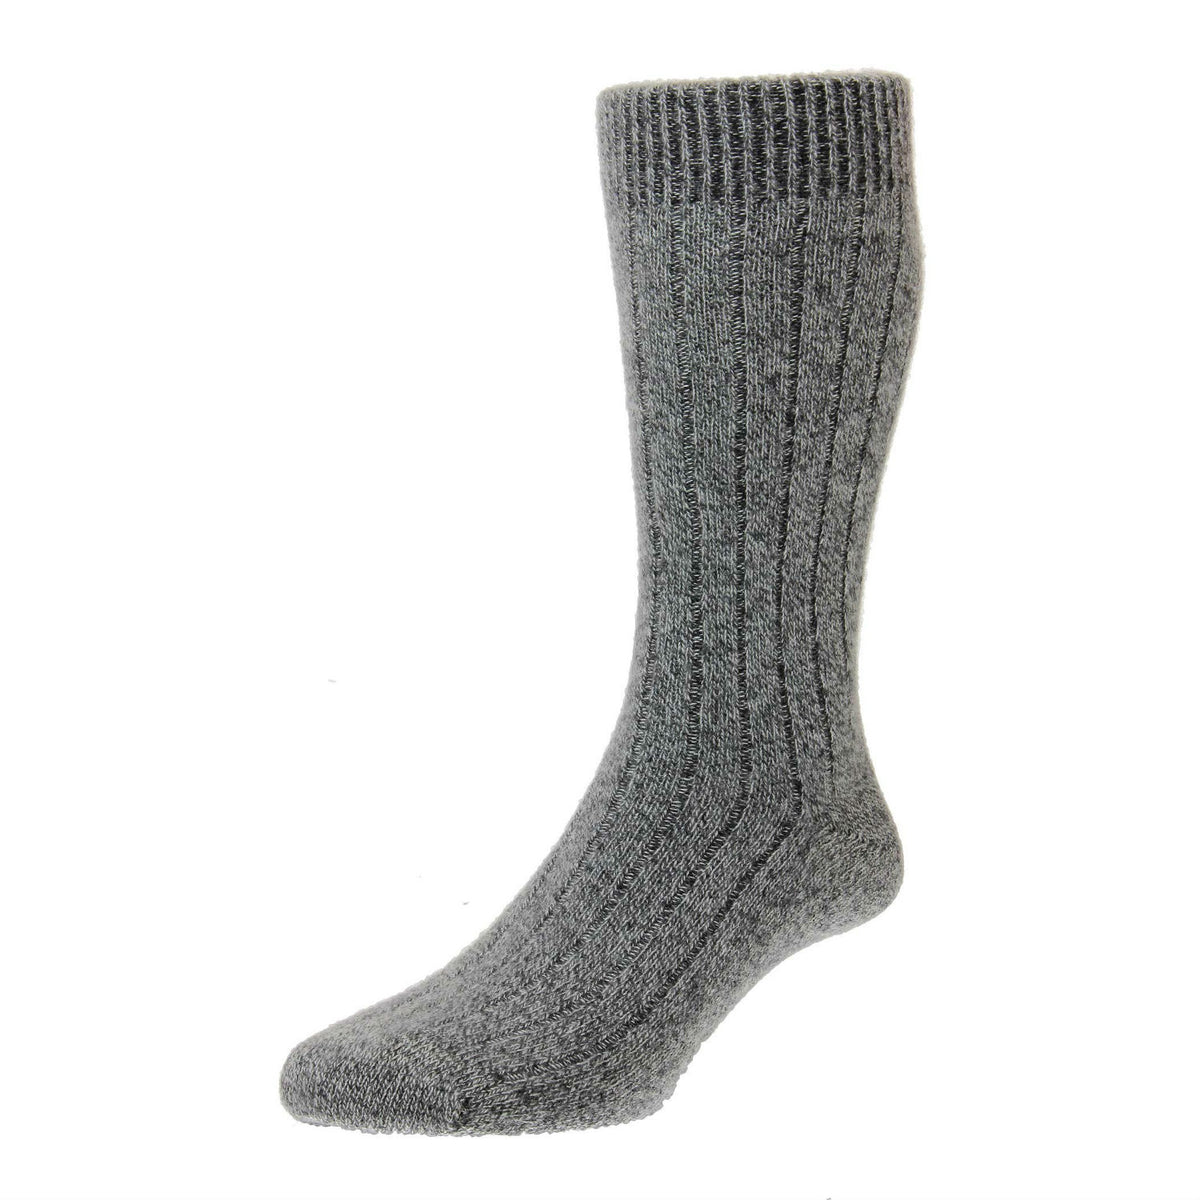 Charcoal Grey Chine | Mens Cashmere Socks | Made in England | Calf Length Sock | buy now at The Cashmere Choice London